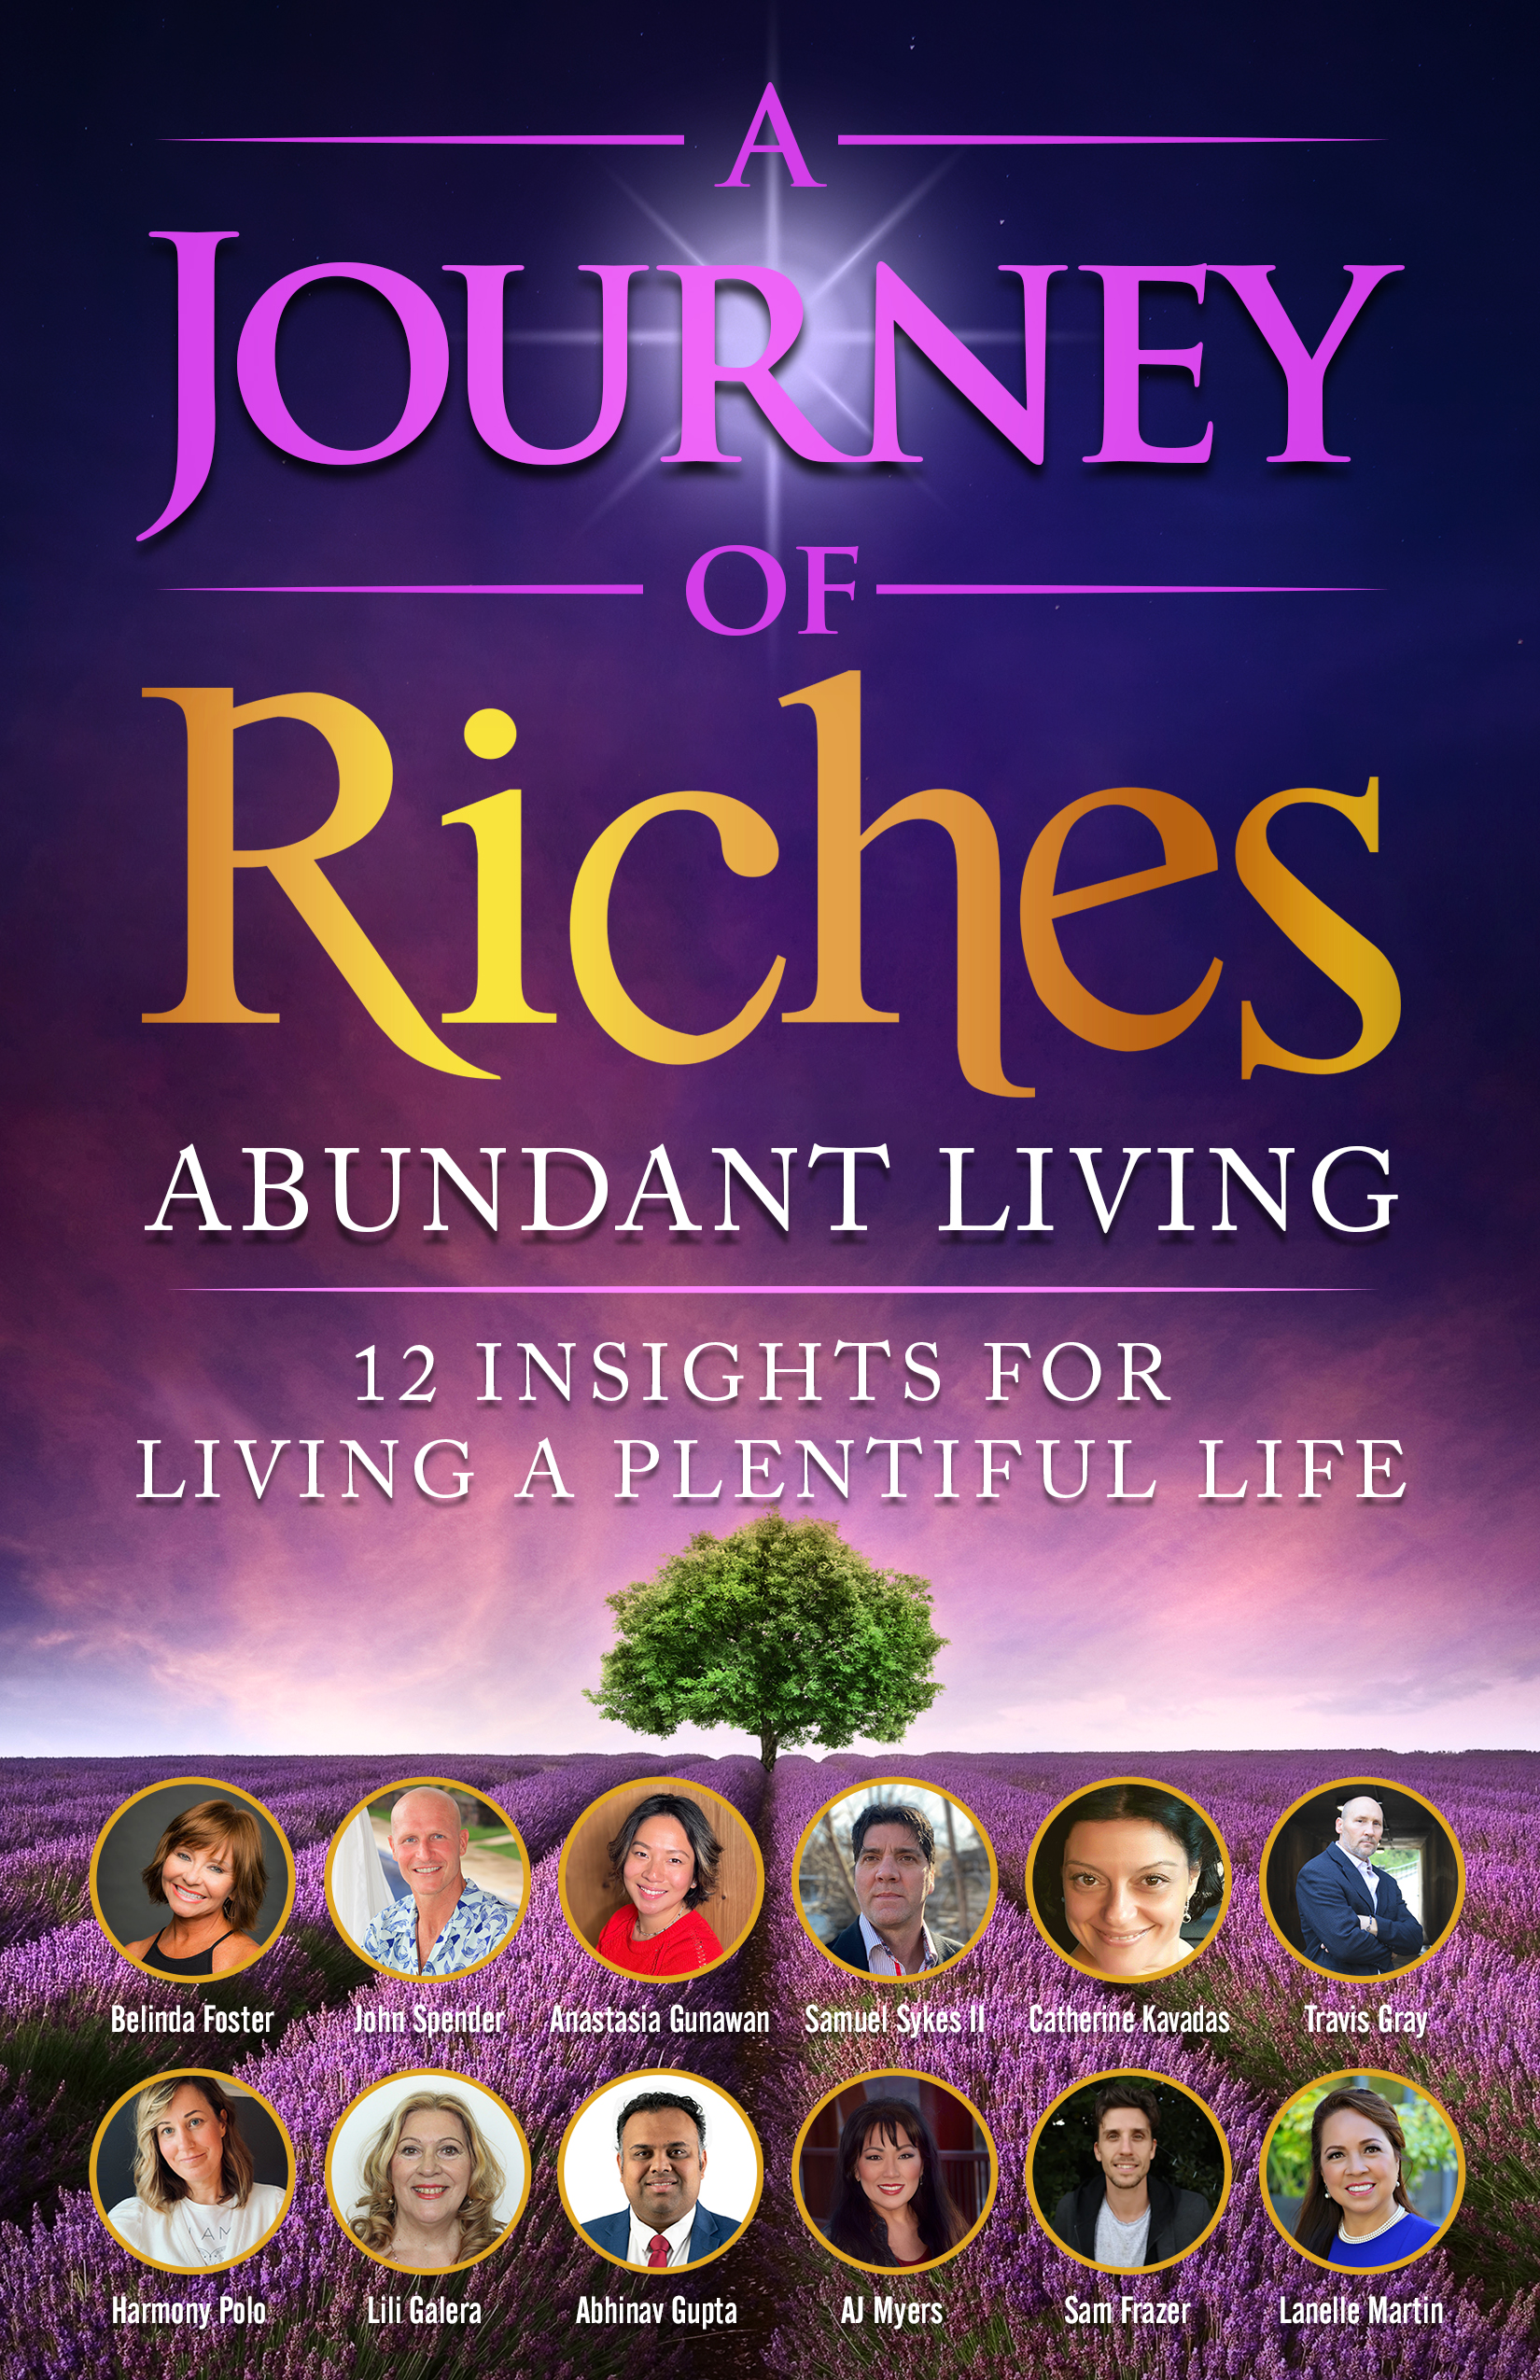 Abundant Living: A Journey of Riches Offers Practical Life Lessons by Those Living an Abundant Life